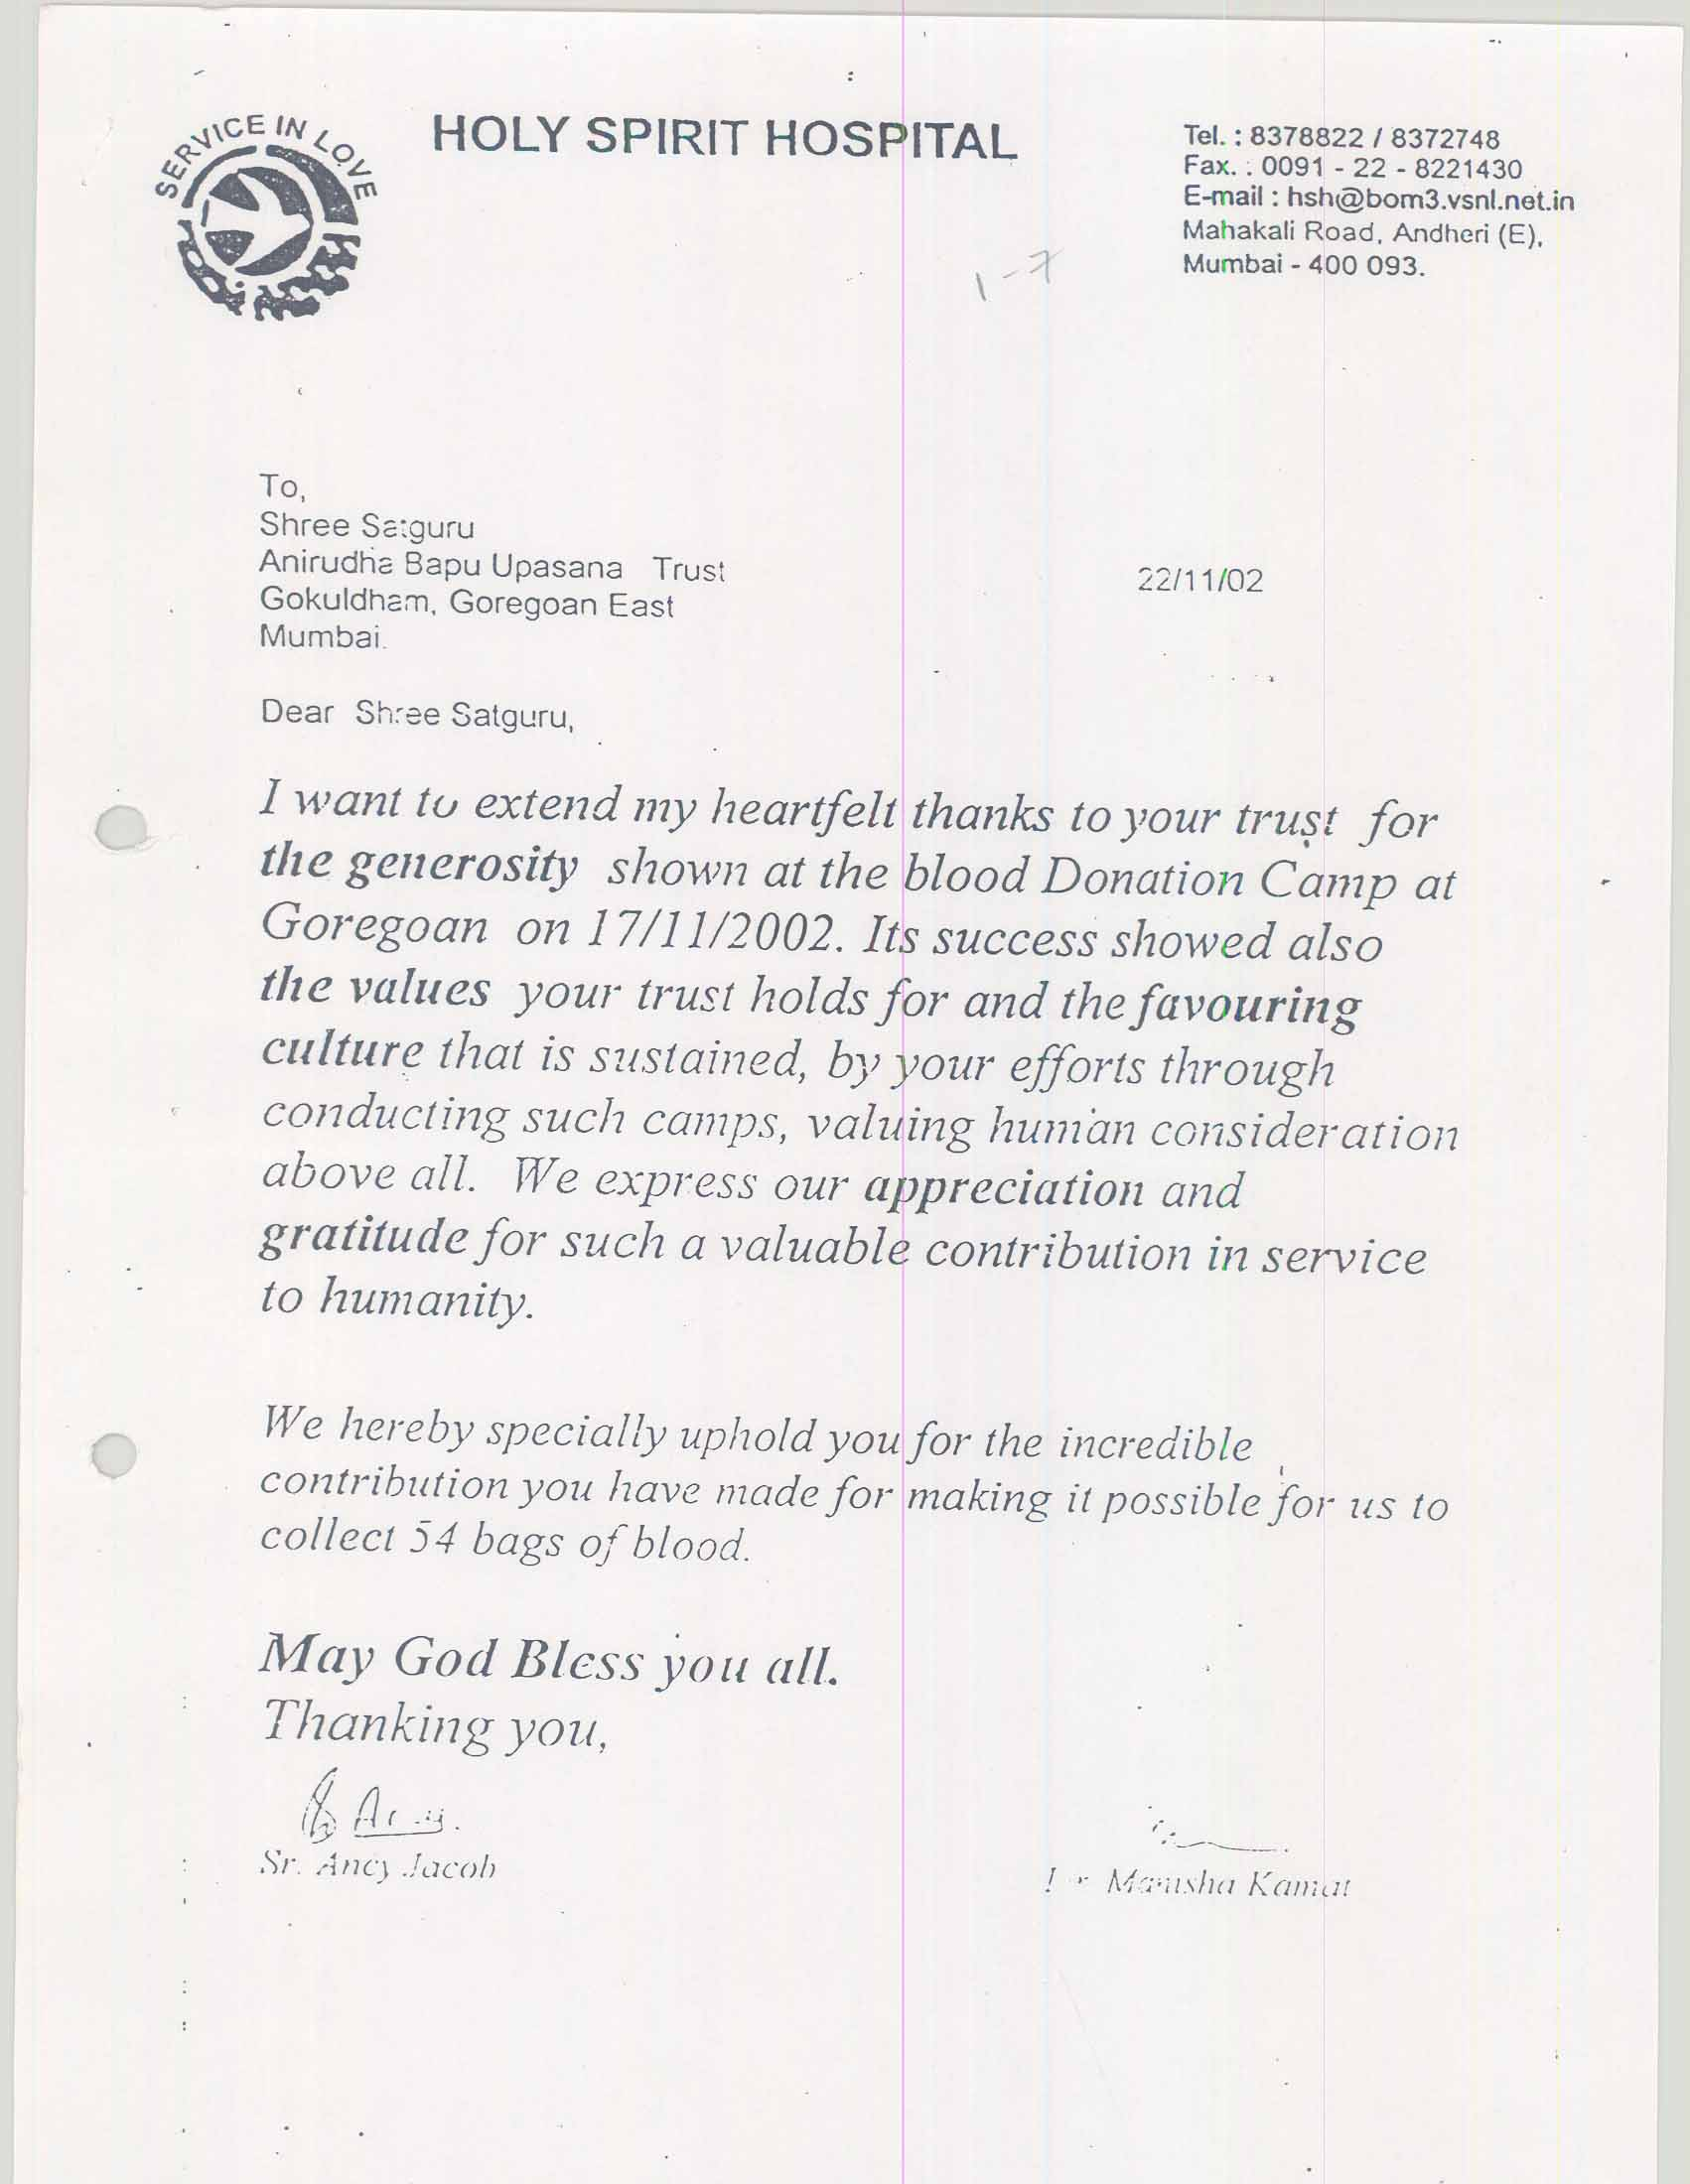 Appreciation letter blood donation camps shree aniruddha upasana appreciation letter from holy spirit hospital 2002 for aniruddhafoundation compassion social thecheapjerseys Gallery